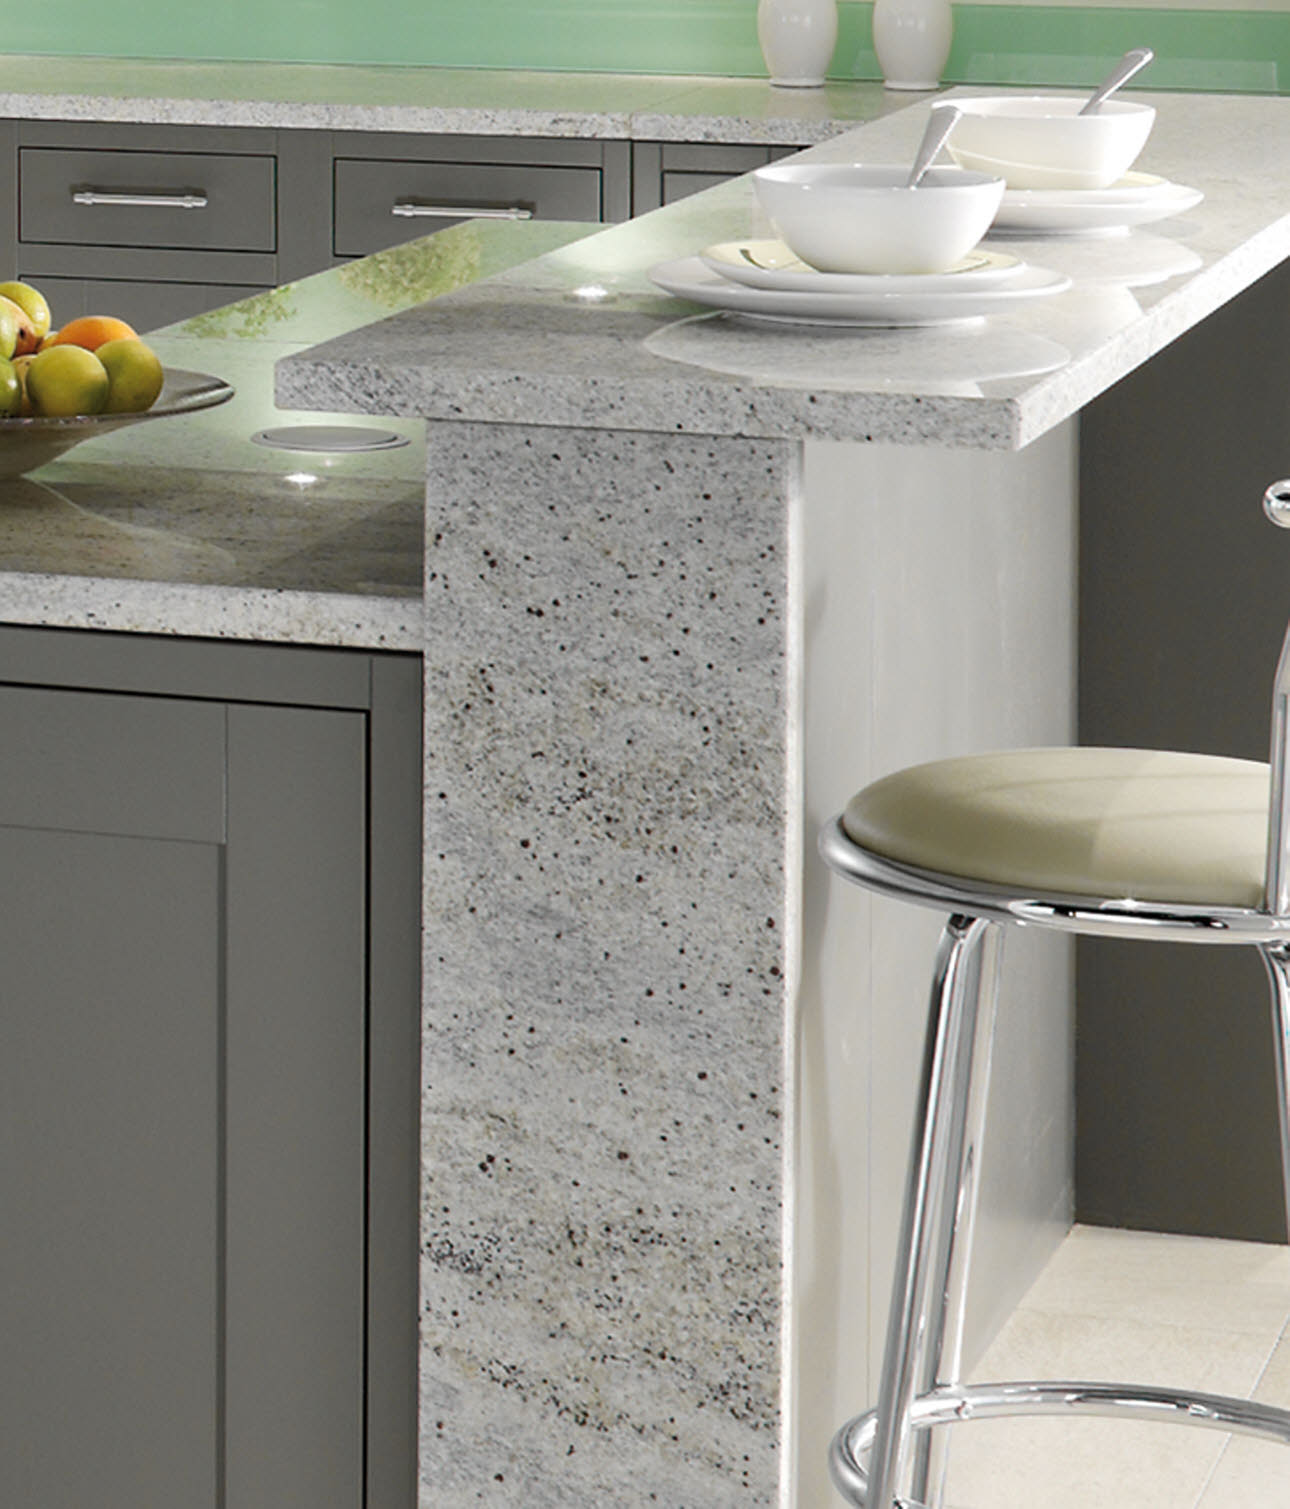 Granite Kitchen Worktops Images: Make Your Cooking Easy With High Featured Kitchen Worktop